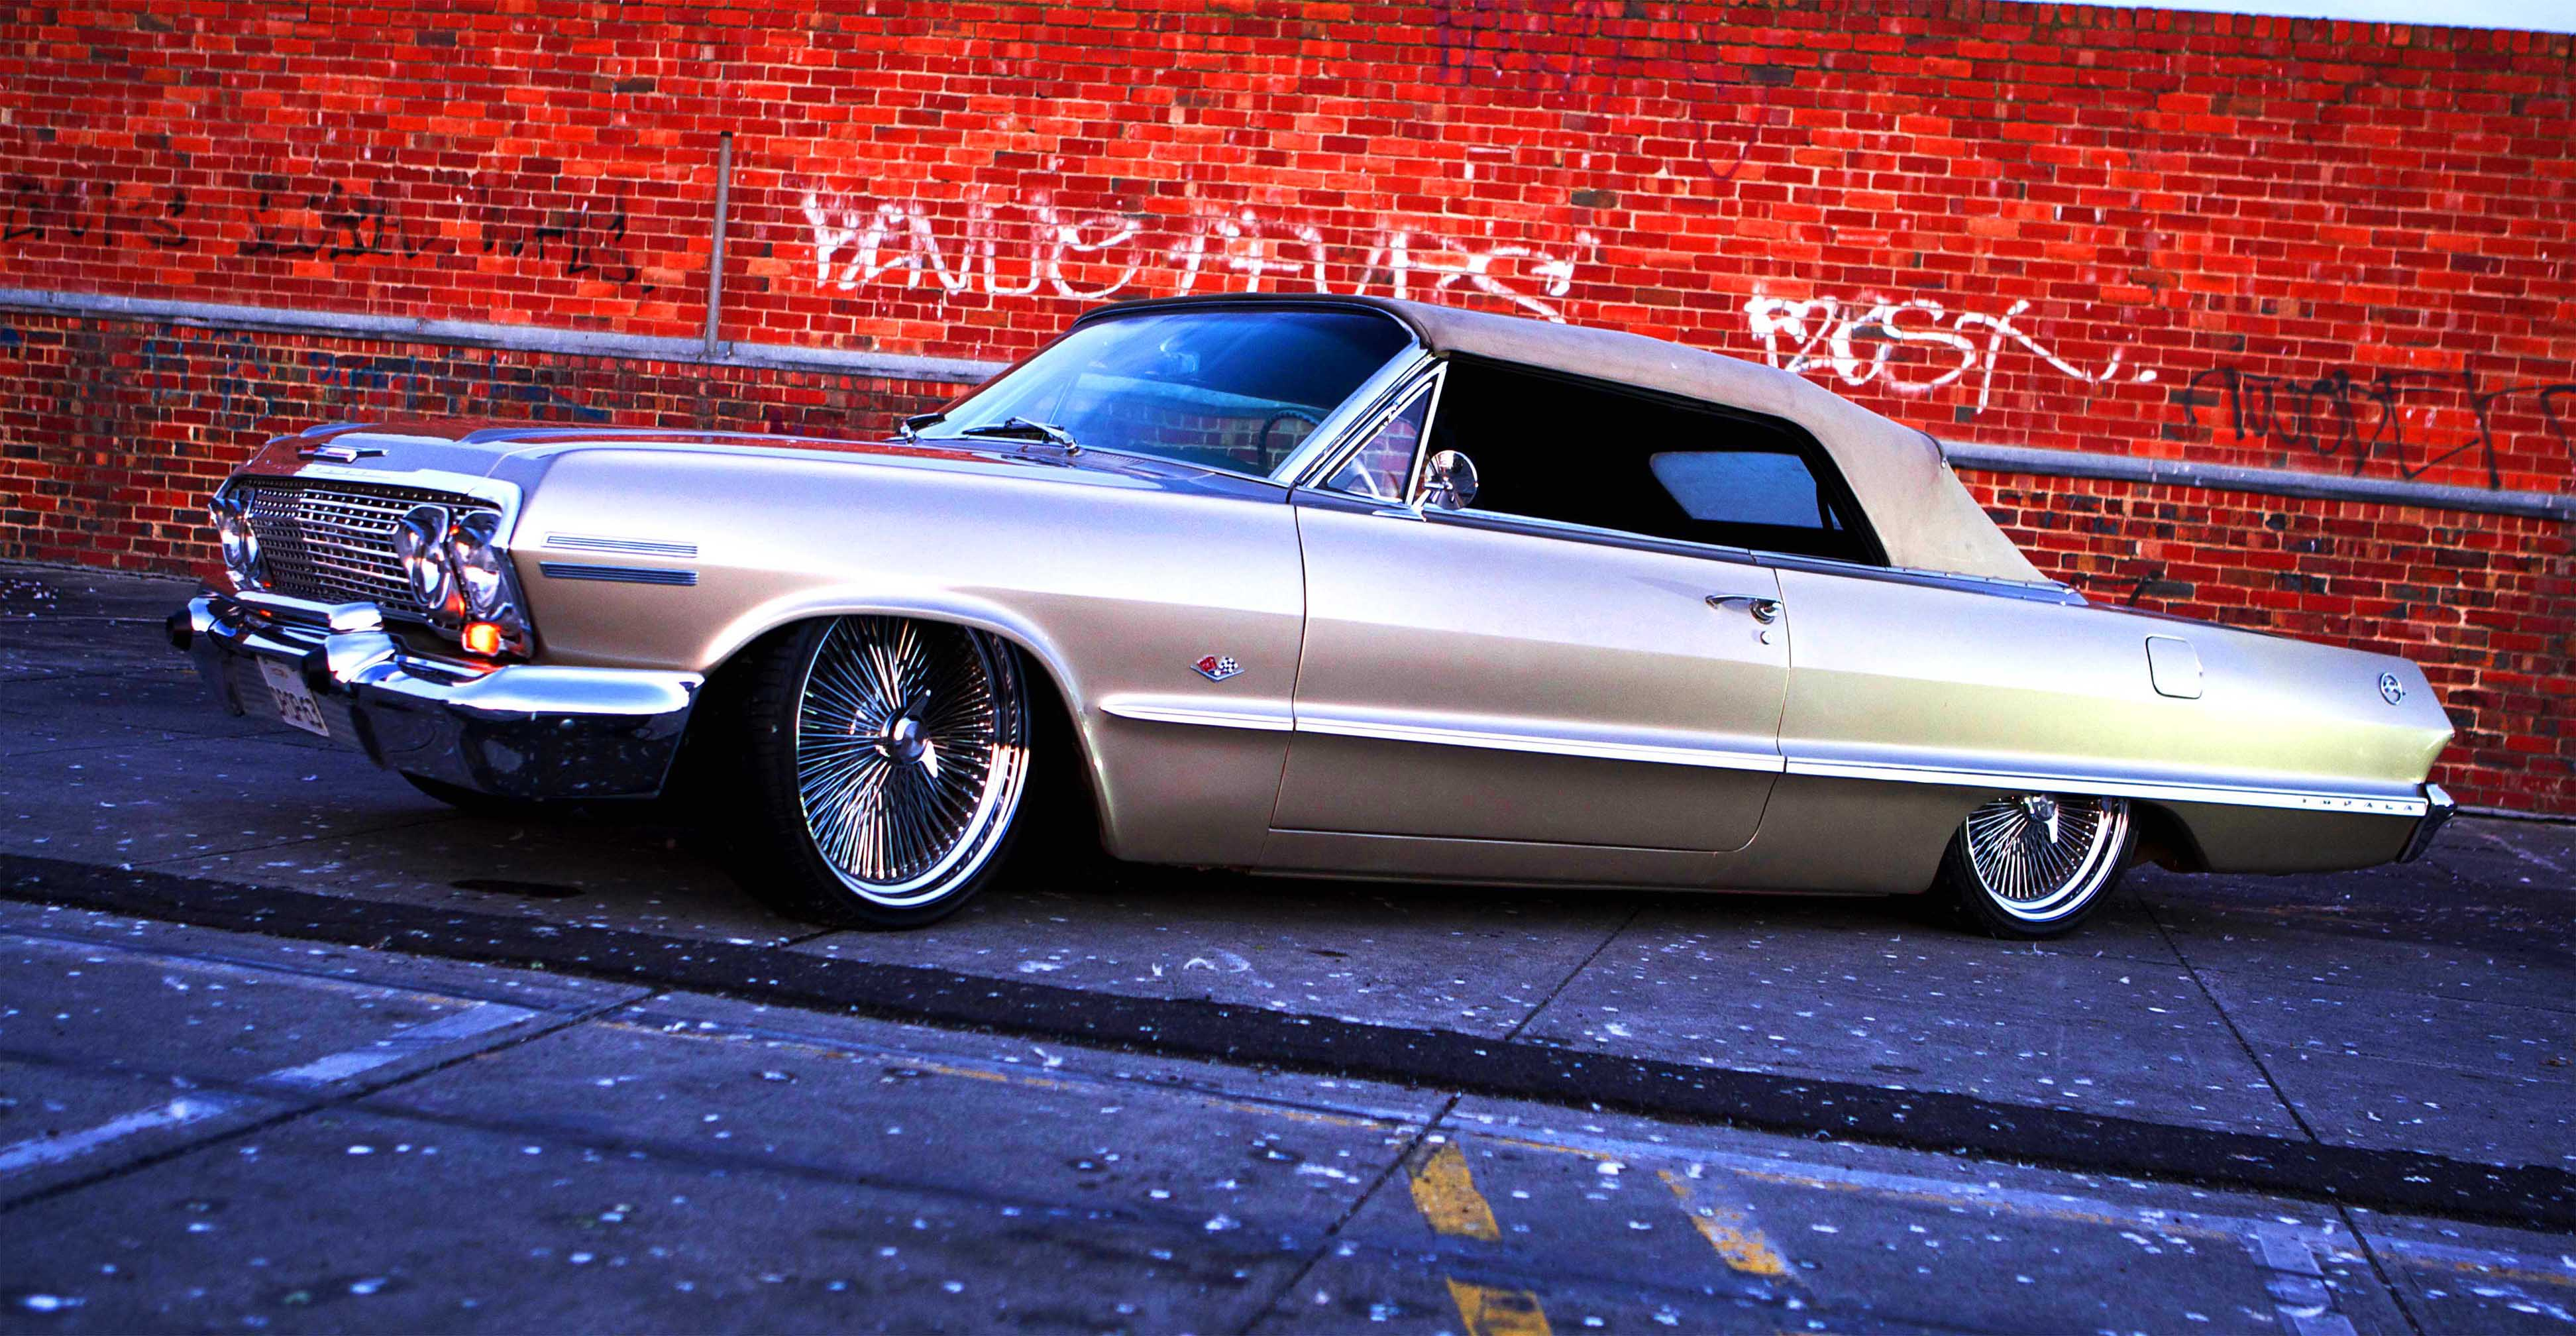 Chevrolet Impala Cars for sale in Australia - JUST CARS